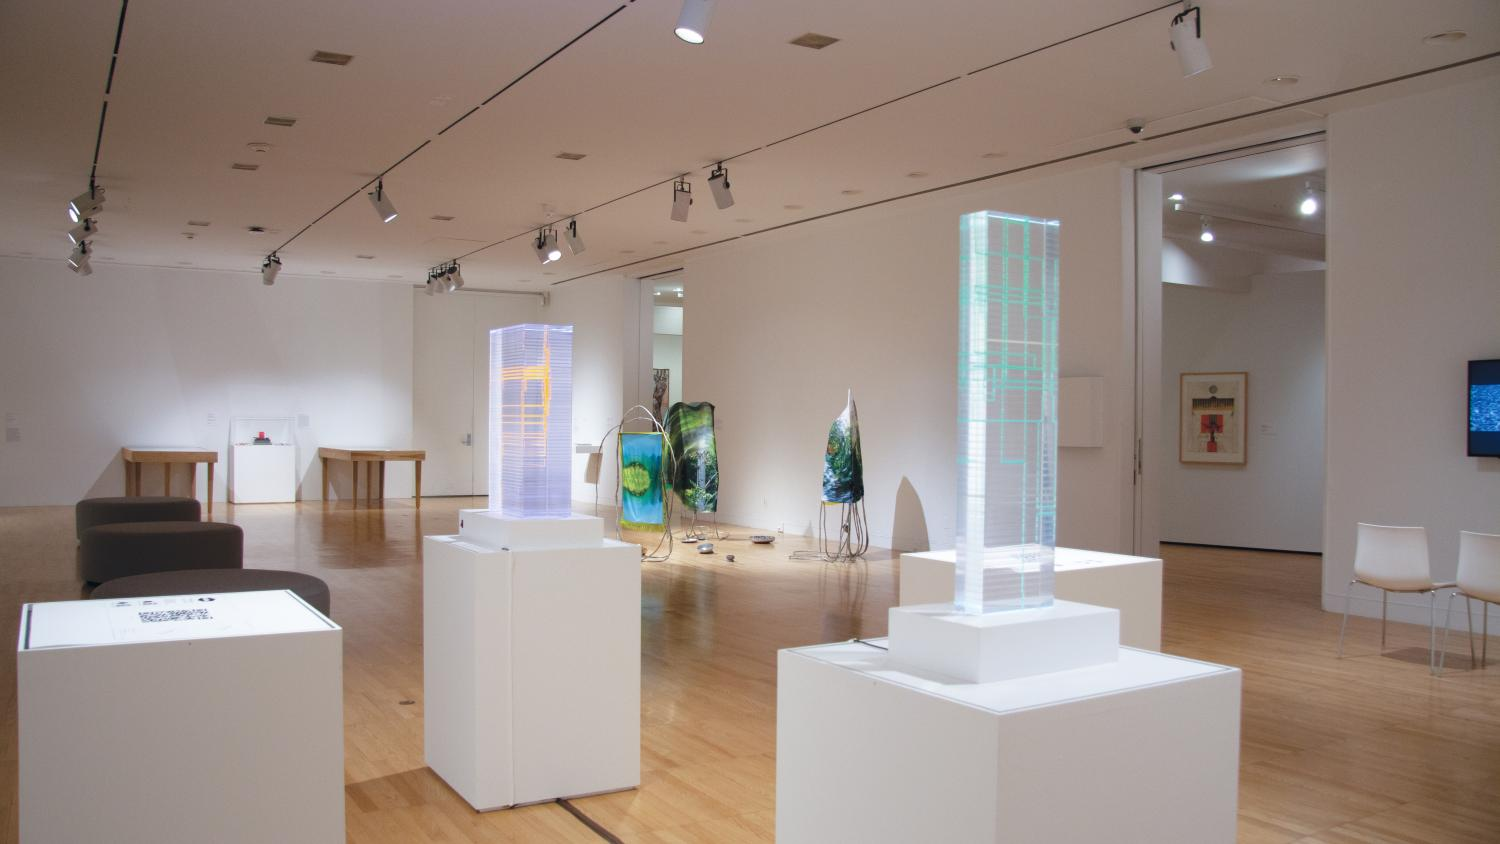 Sculptures by Stephen Cartwright containing layers of clear and colored resin are on pedestals in the foreground. Freeform sculpture of foil and fabric by Melissa Pokorny are in the background in this gallery image of the Faculty Exhibition at KAM.